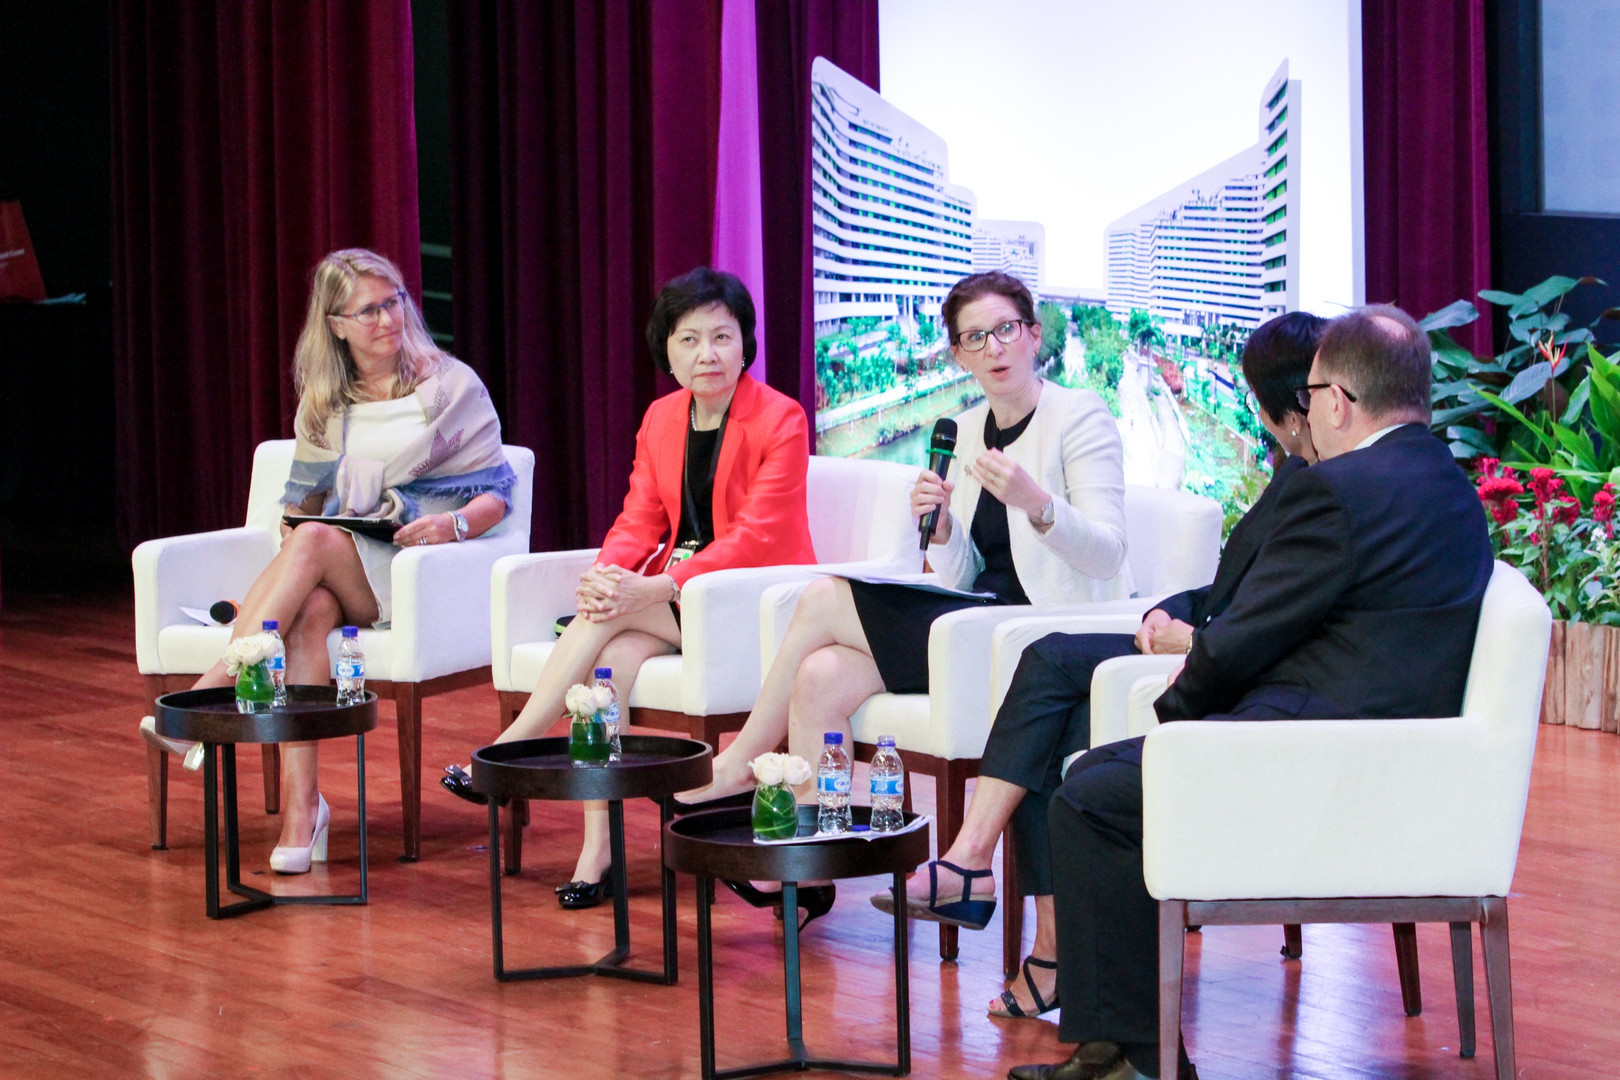 Dr Orna Rosenfeld presents at the International Housing Forum in Singapore